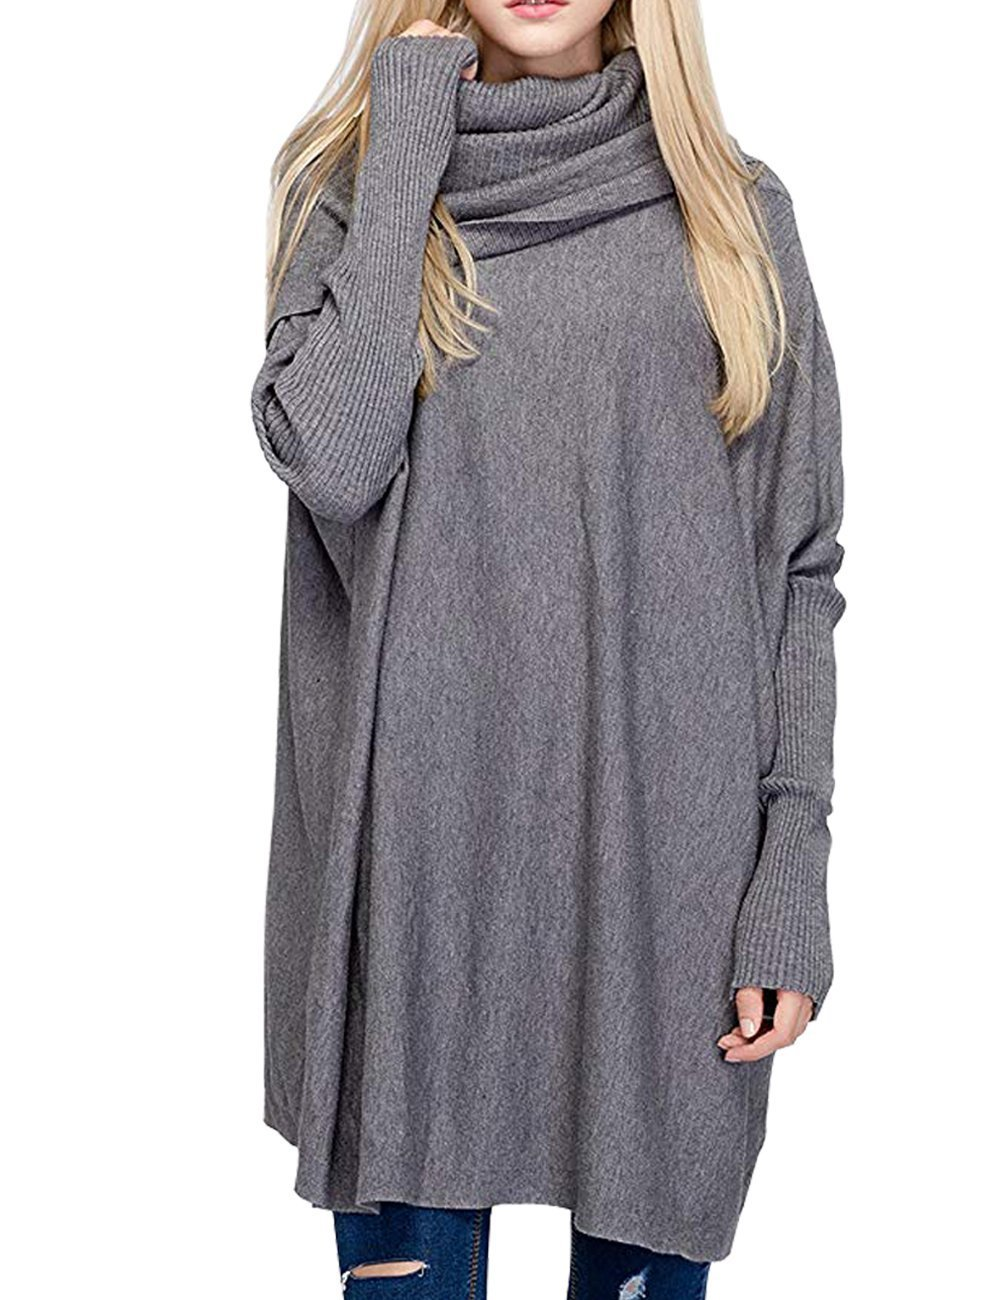 BOBIBI Women Oversized Cowl Neck Sweaters Long Sleeve Loose Fit Knitted Pullover,Gray